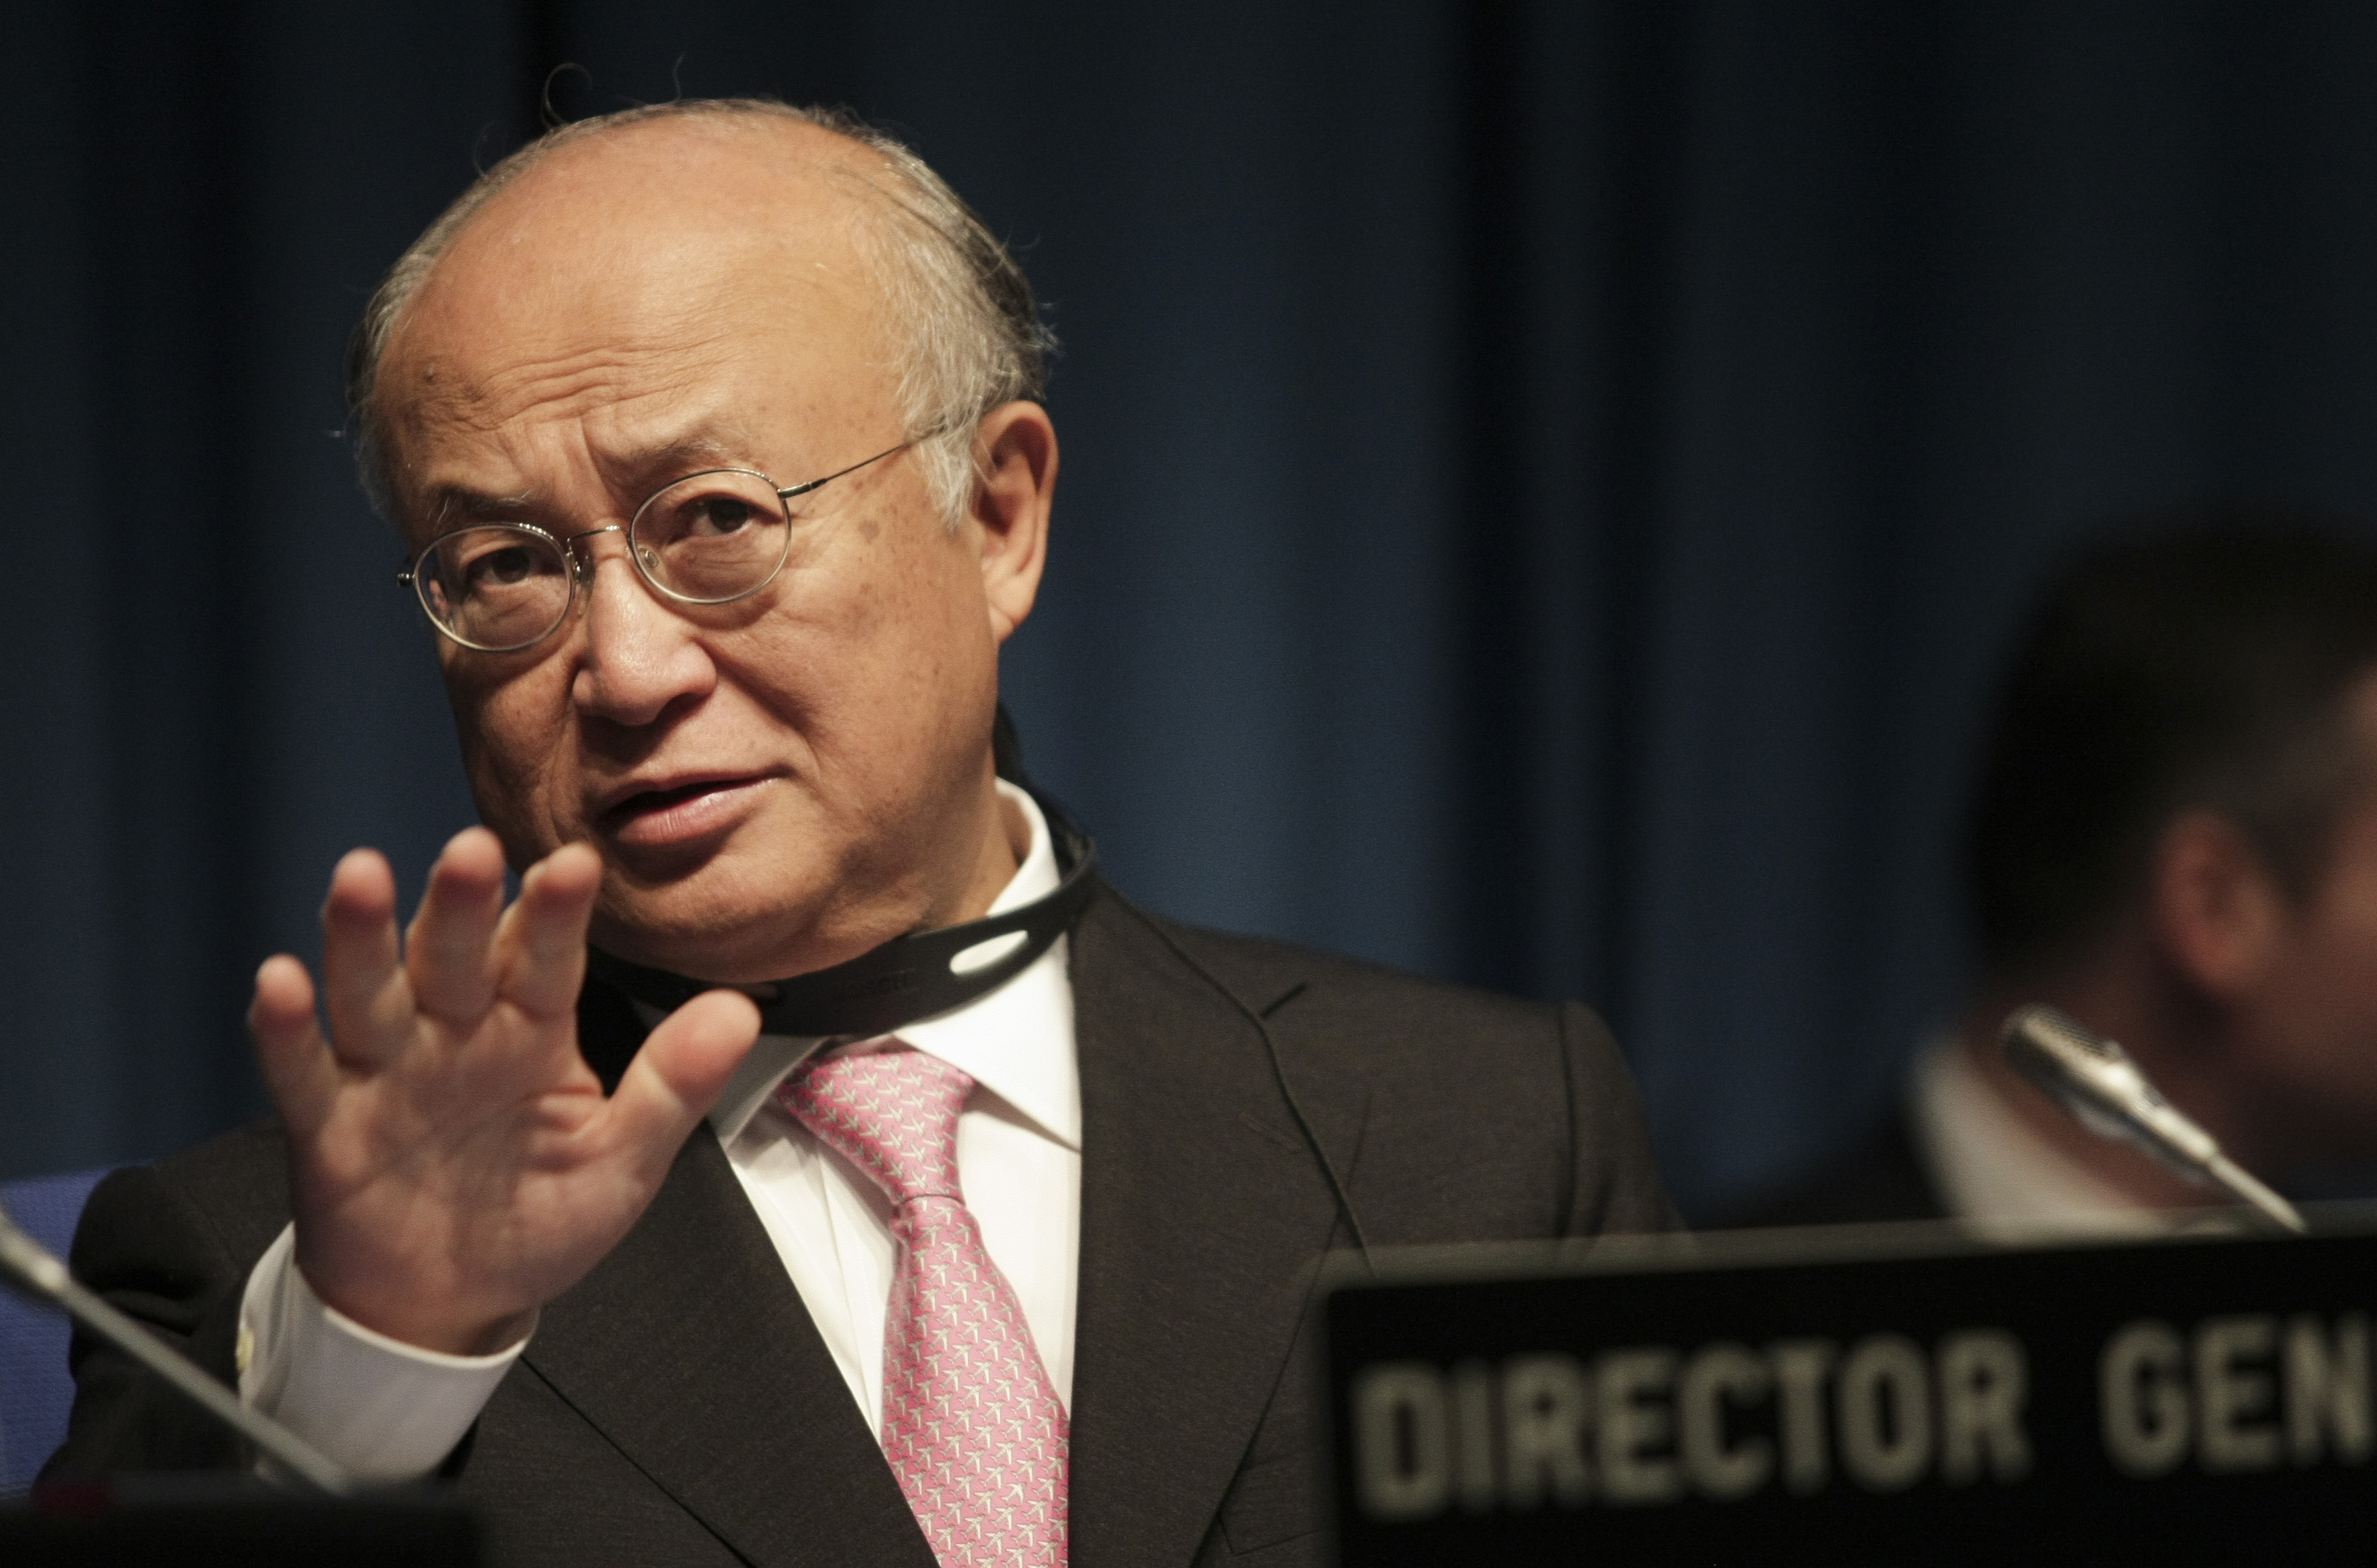 Yukiya Amano, director-general of the International Atomic Energy Agency, delivers remarks on July 1, 2013, the first day of a nuclear security conference at the agency's headquarters in Vienna. (Patrick Domingo/AFP/Getty Images)